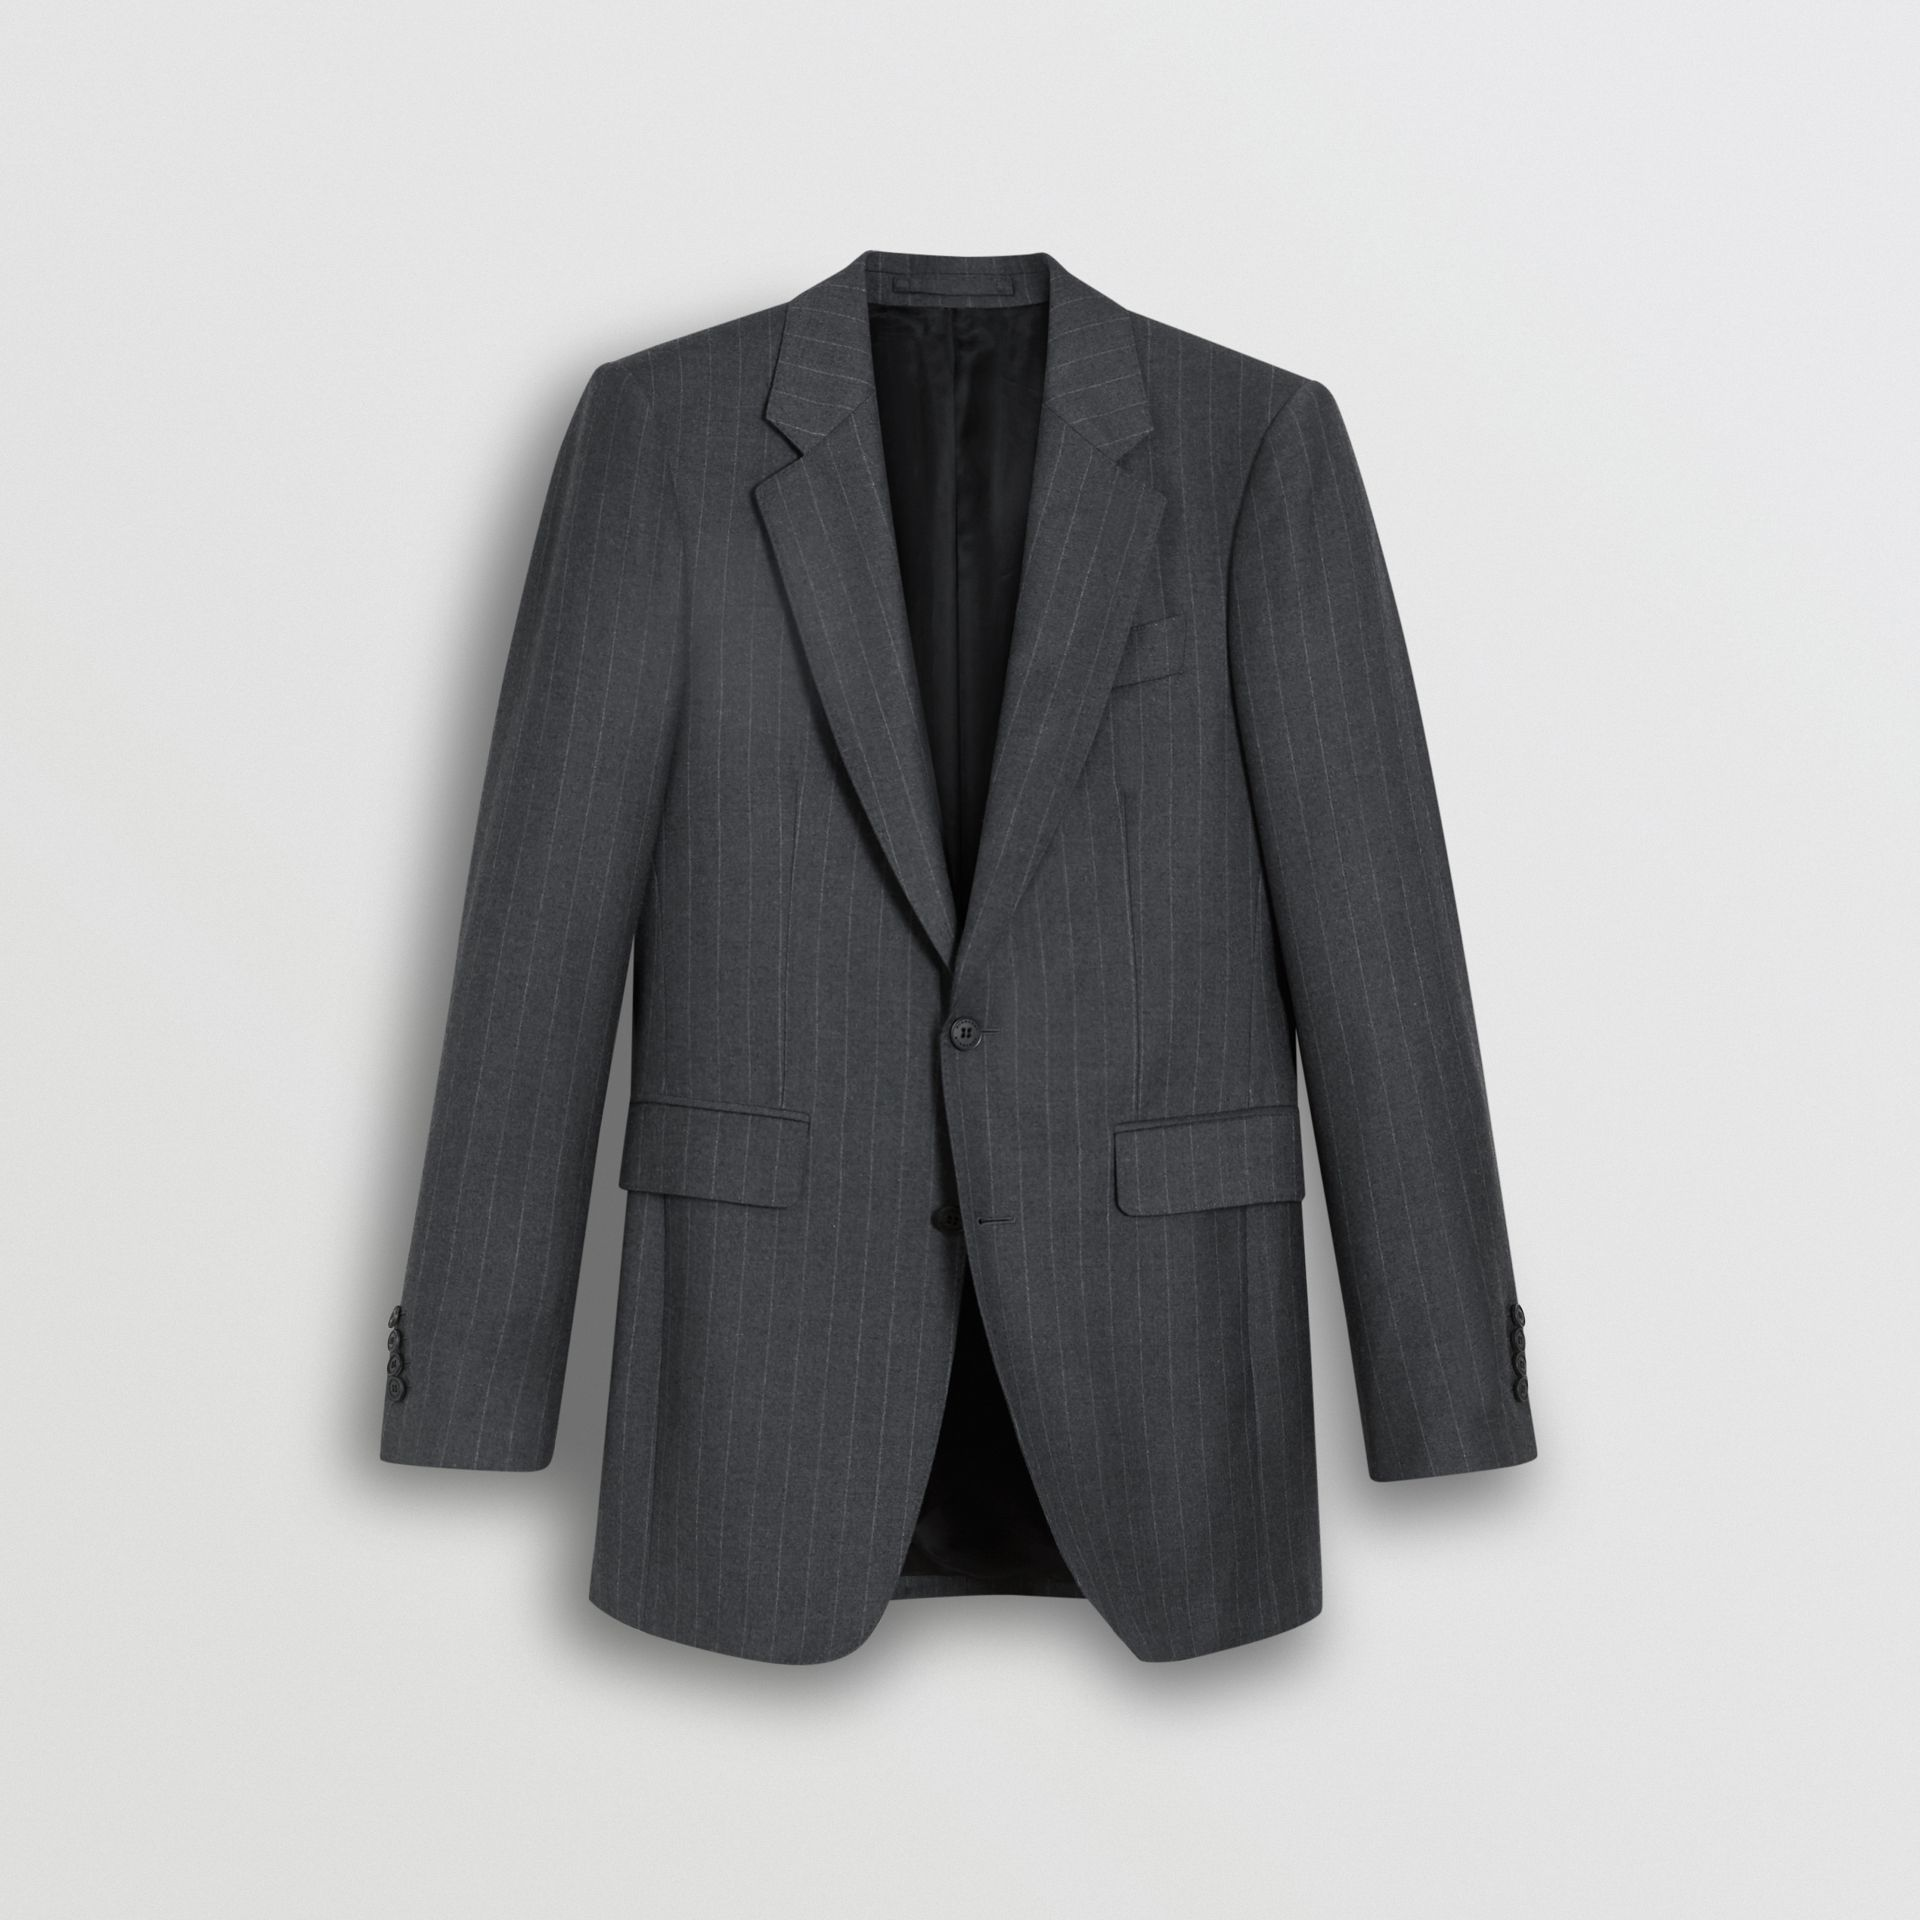 Slim Fit Pinstriped Wool Cashmere Suit in Mid Grey - Men | Burberry - gallery image 3